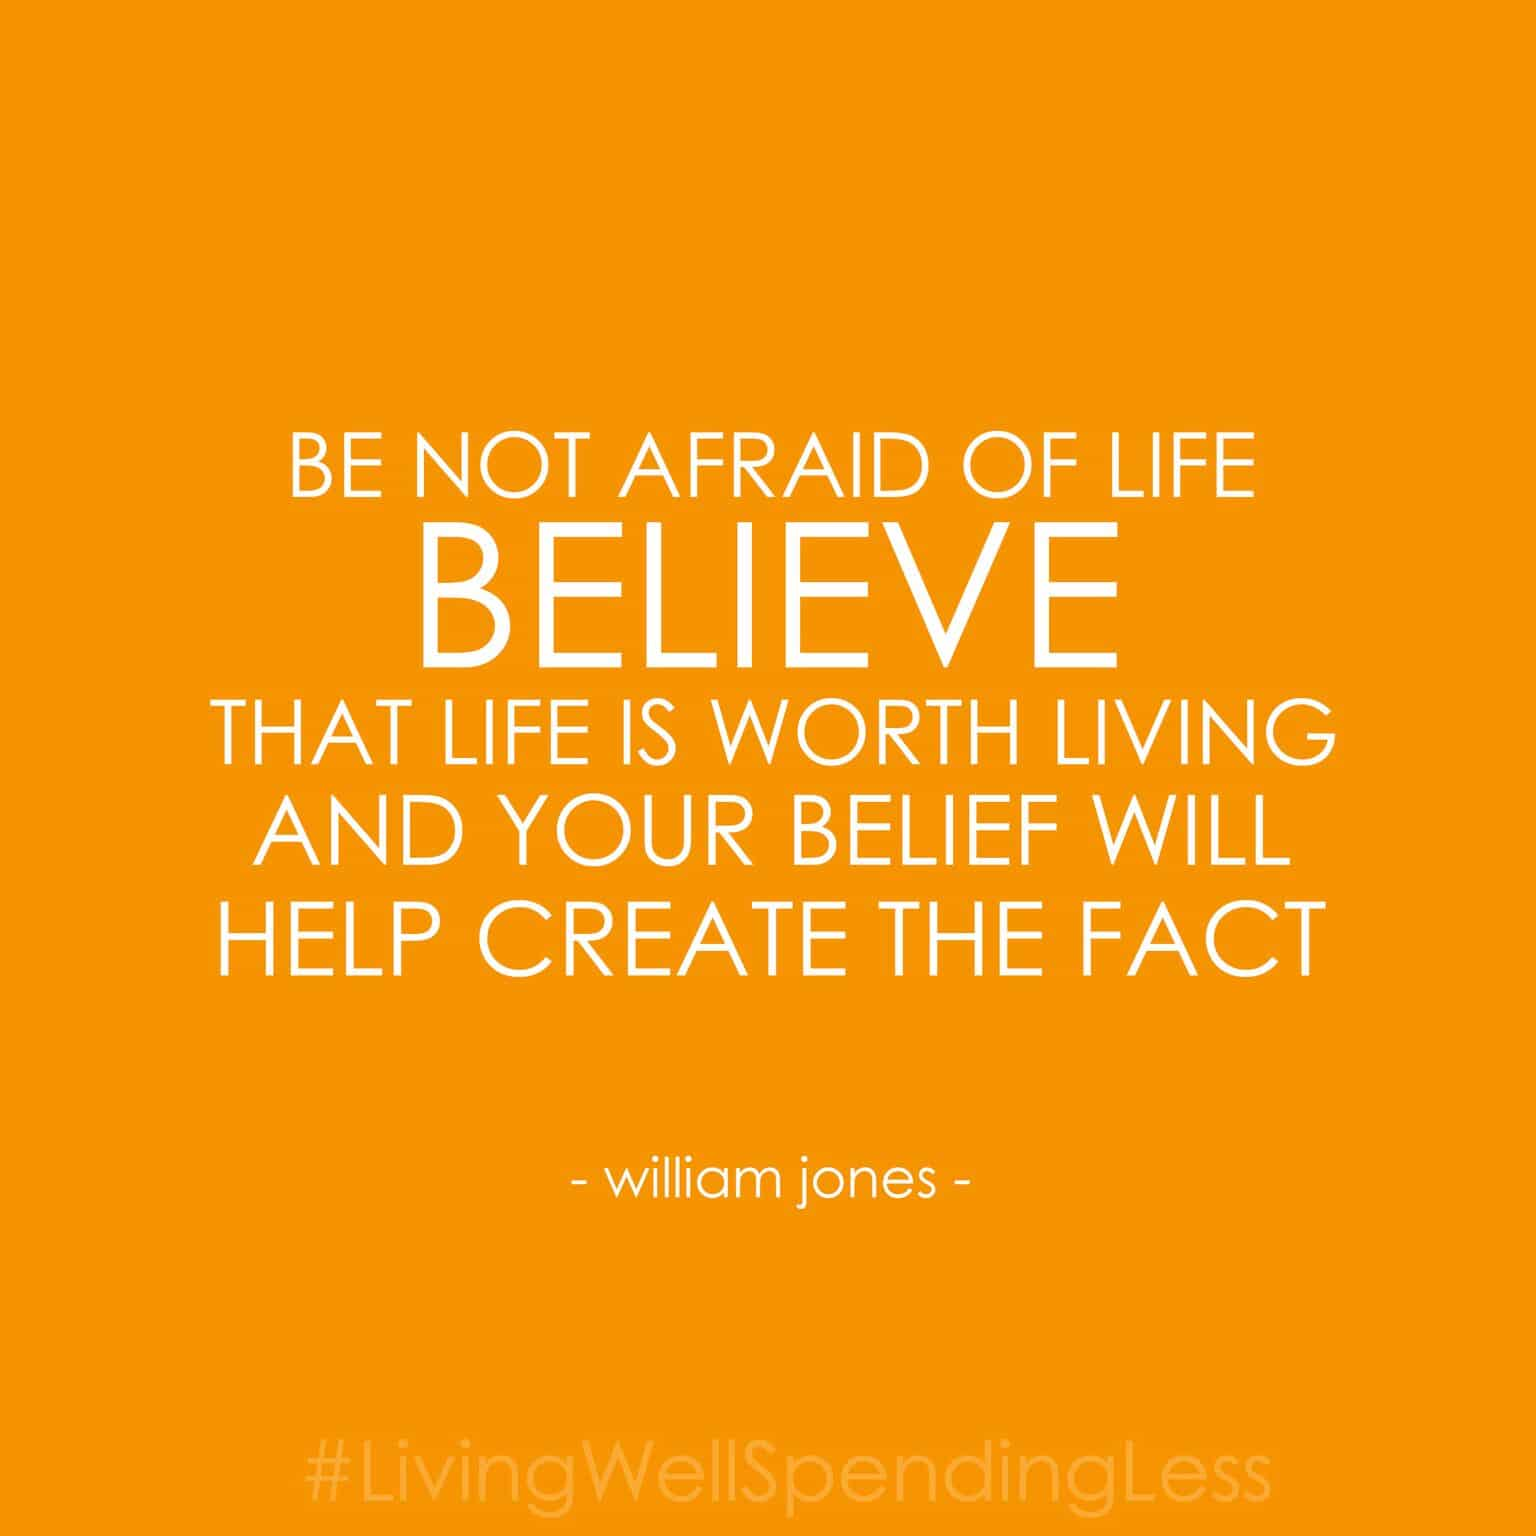 Be not afraid of life. Believe that life is worth living and your belief will help create the fact. - William Jones